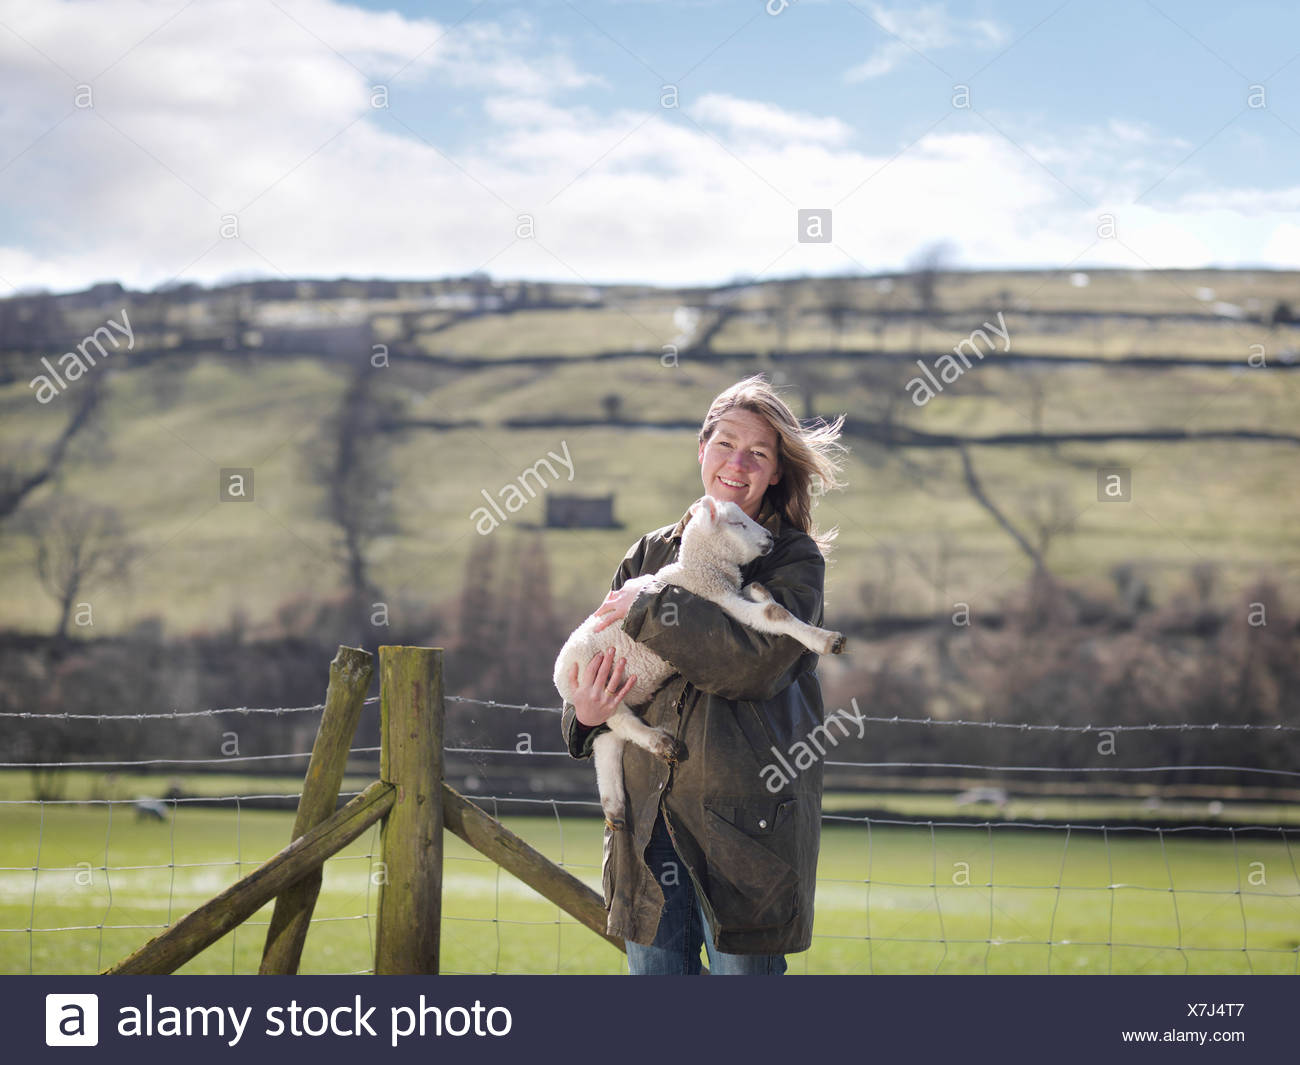 Woman holding lamb in front of fence - Stock Image